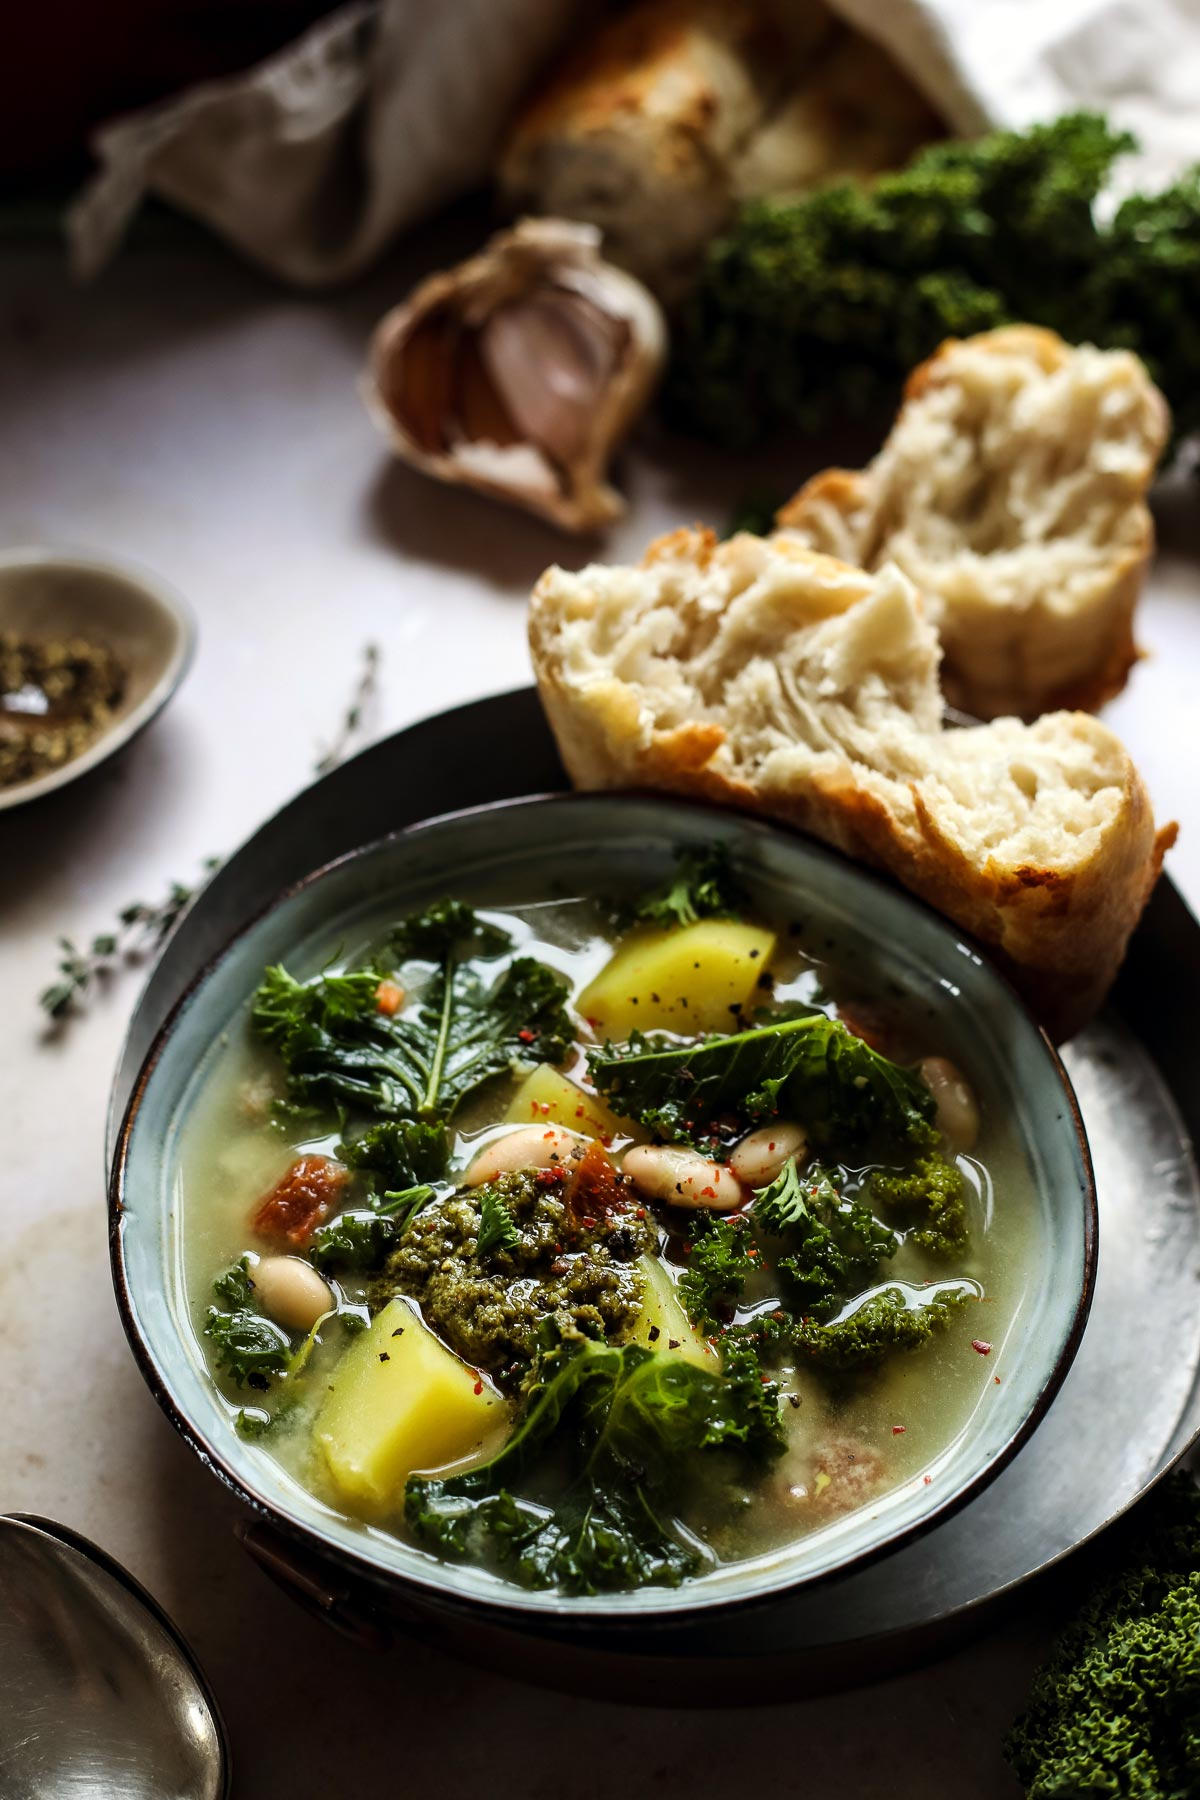 Potato and kale soup in a bowl served with crusty bread.